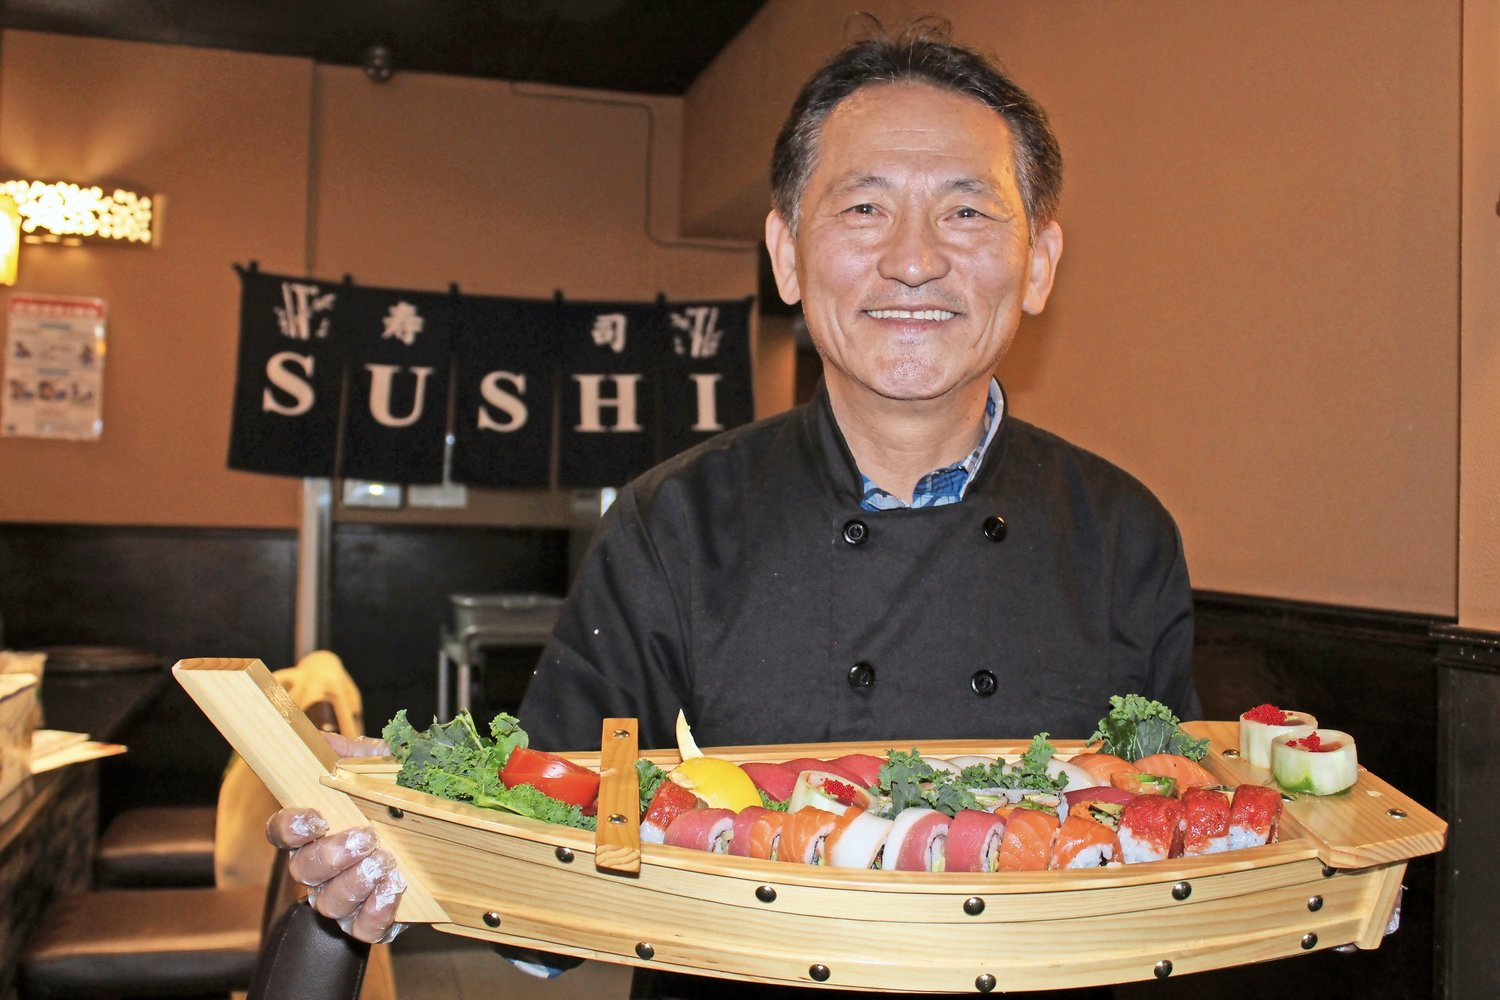 David Sim, the new chef and owner of Fuji Seoul in Merrick, proudly displayed the restaurant's mizu sushi boat.